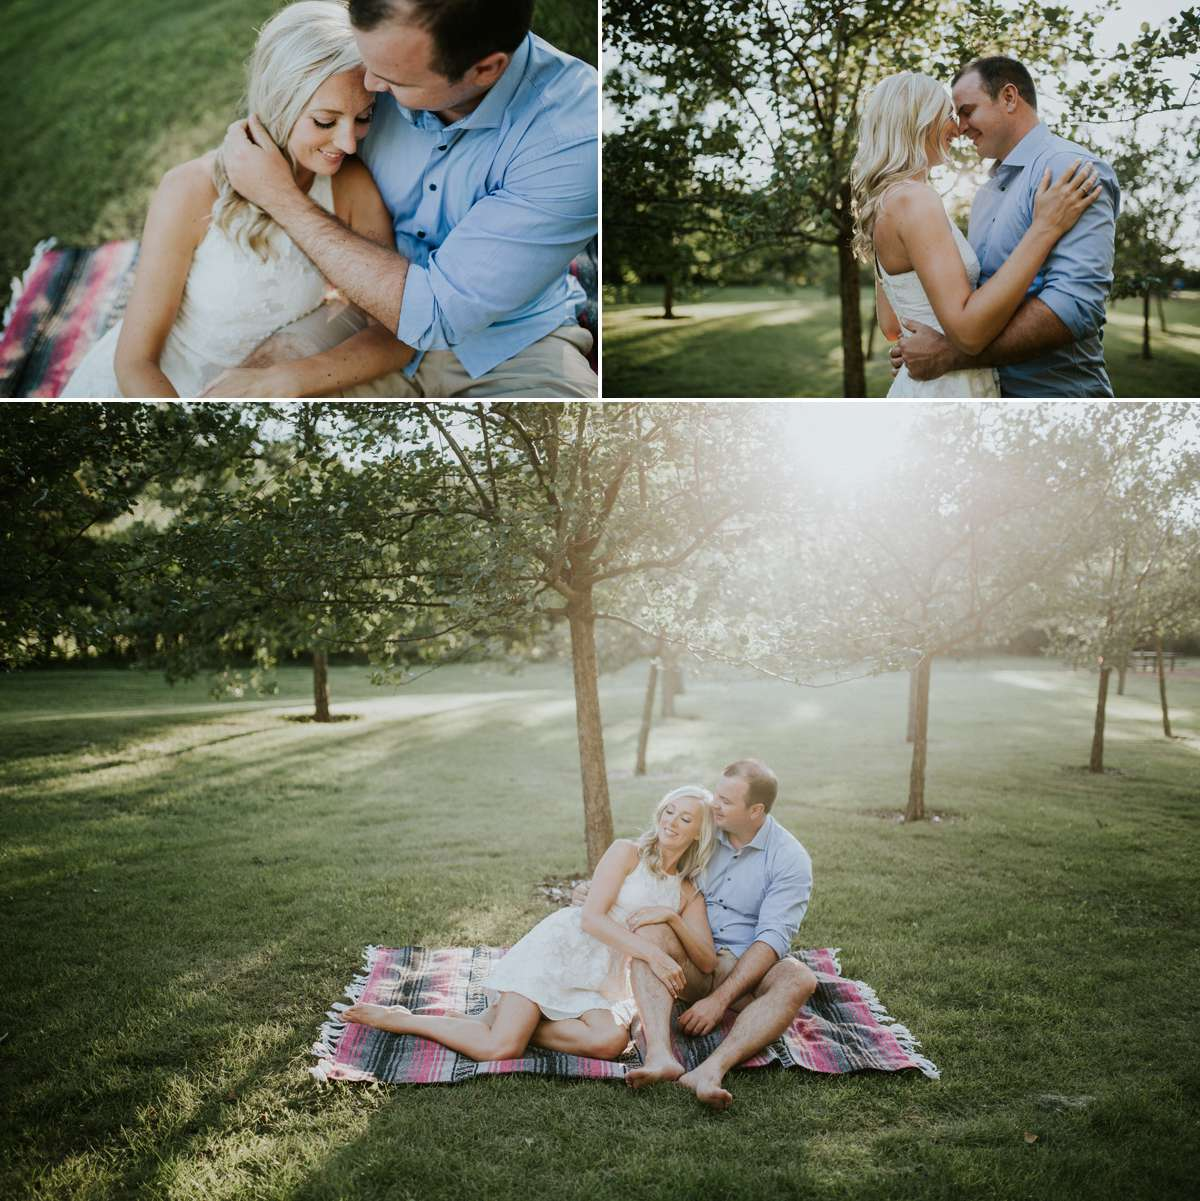 engagement photo ideas Edworthy Park